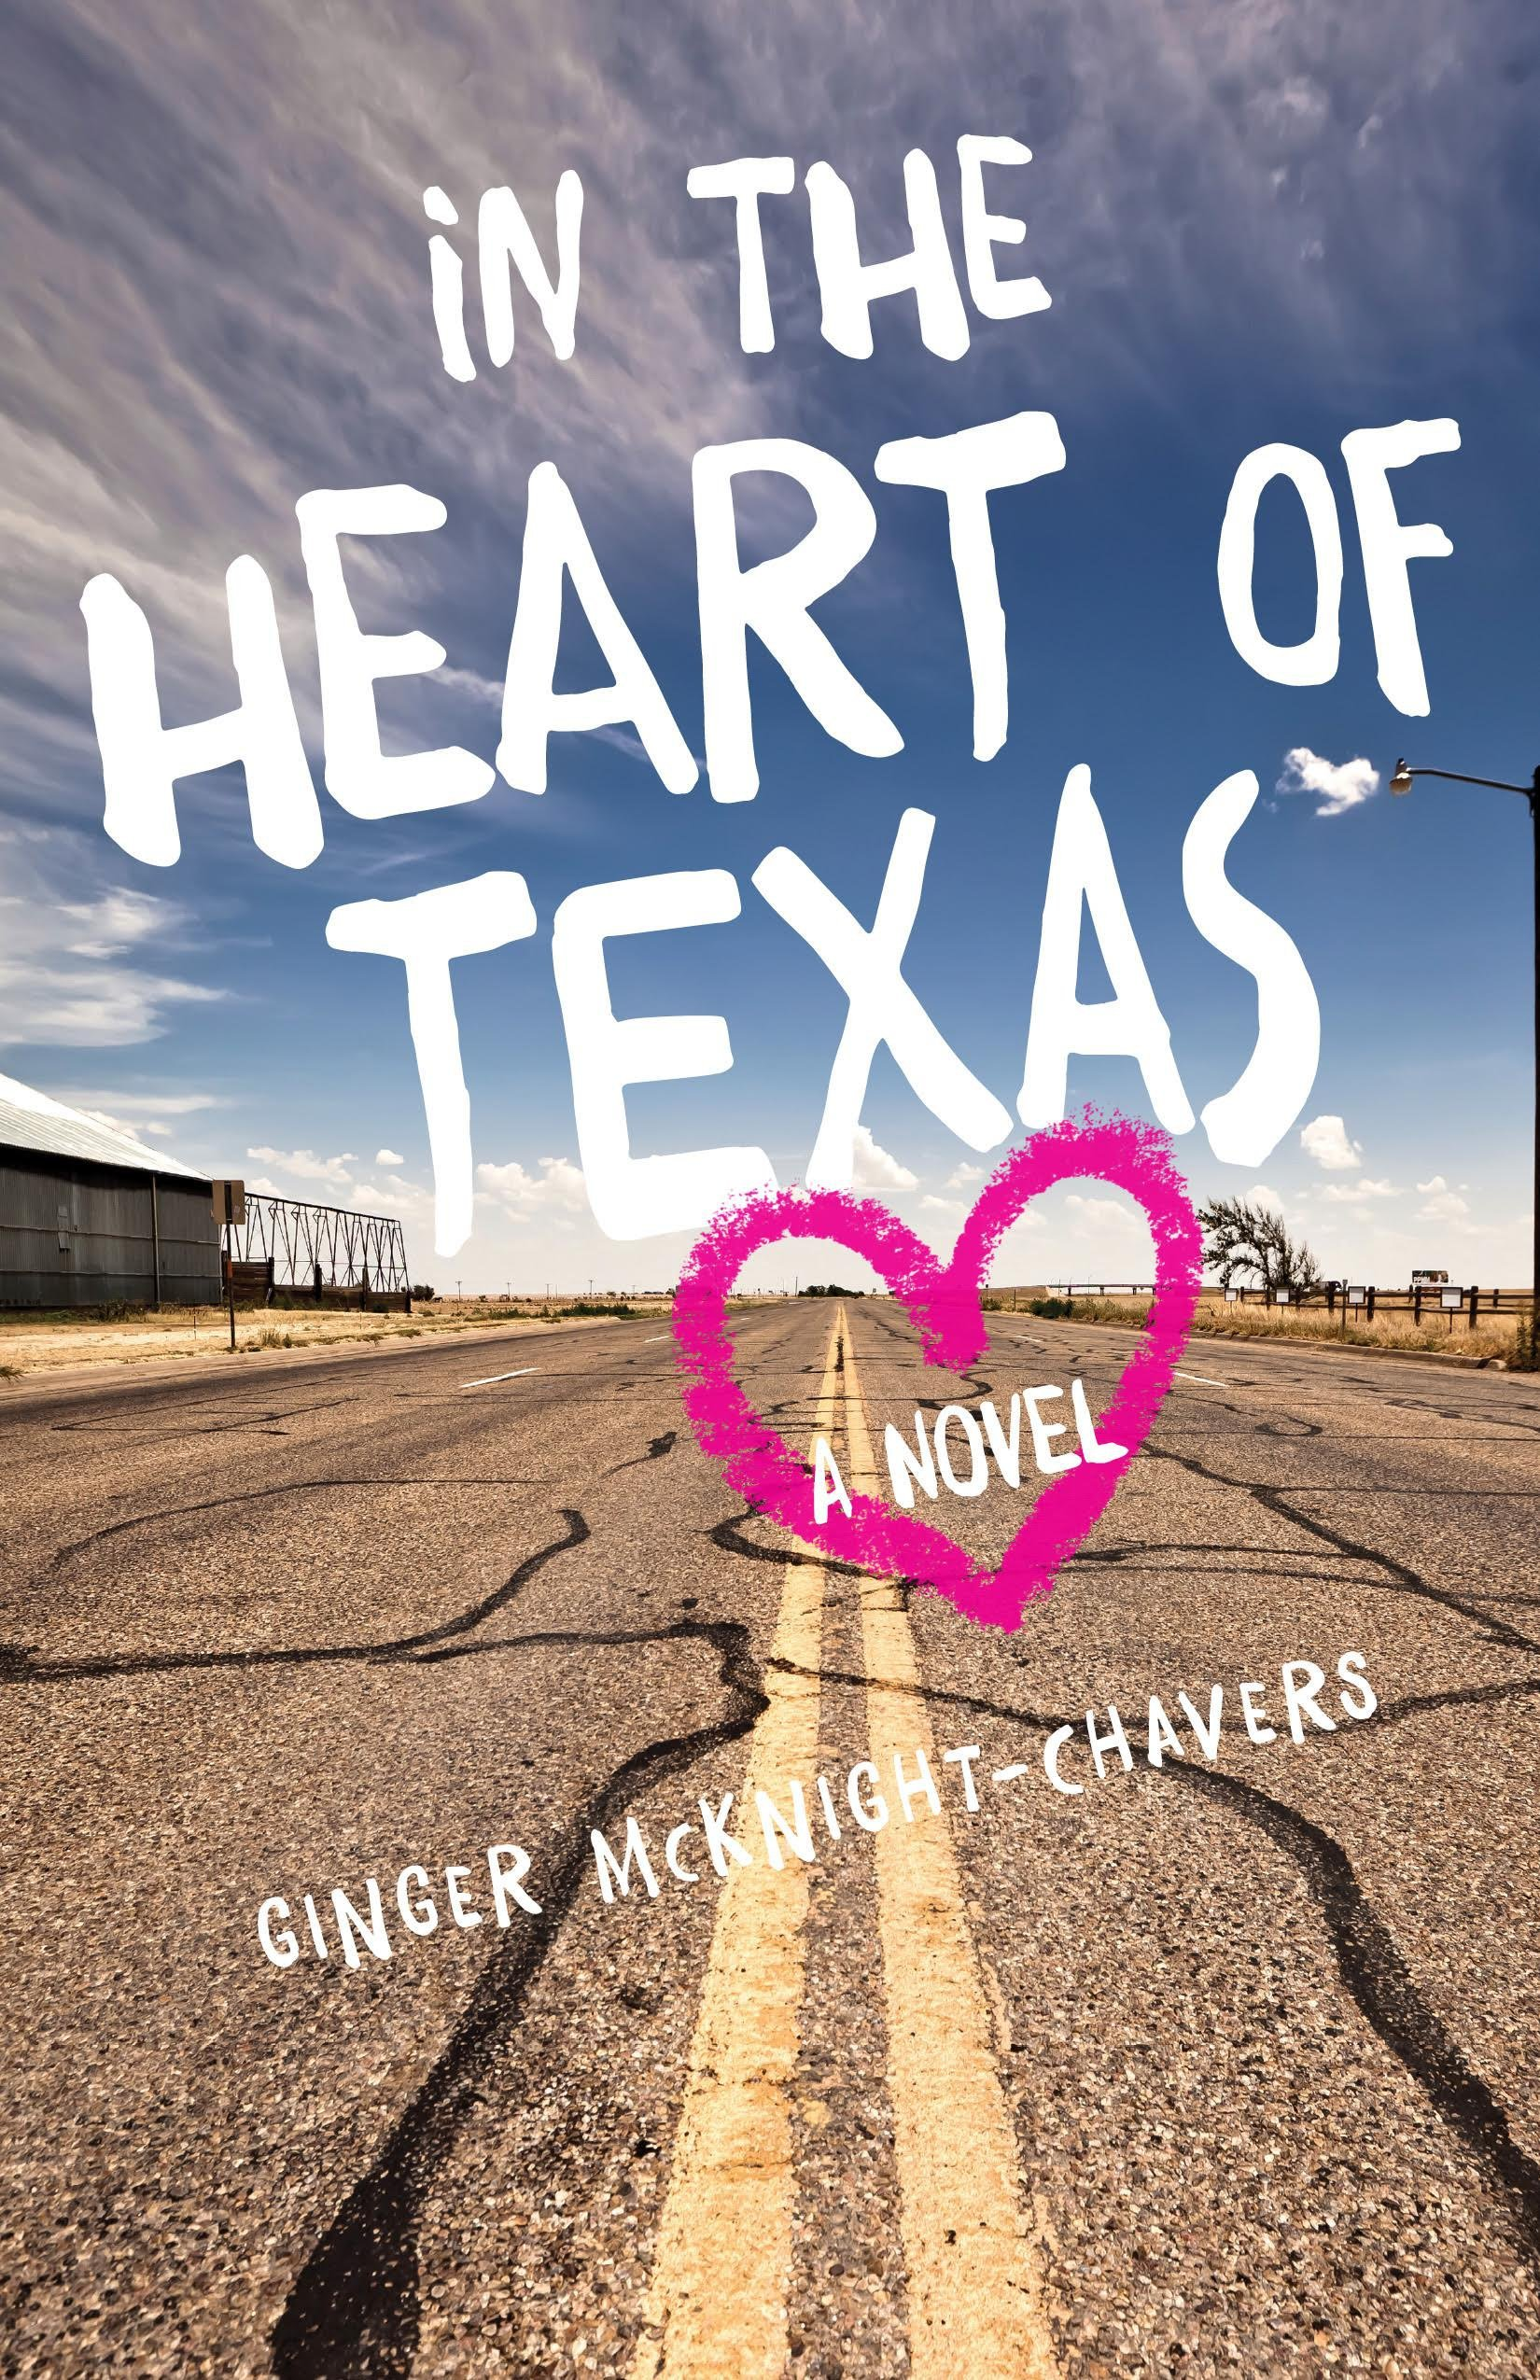 heart-texas-ginger-mcknight-chavers